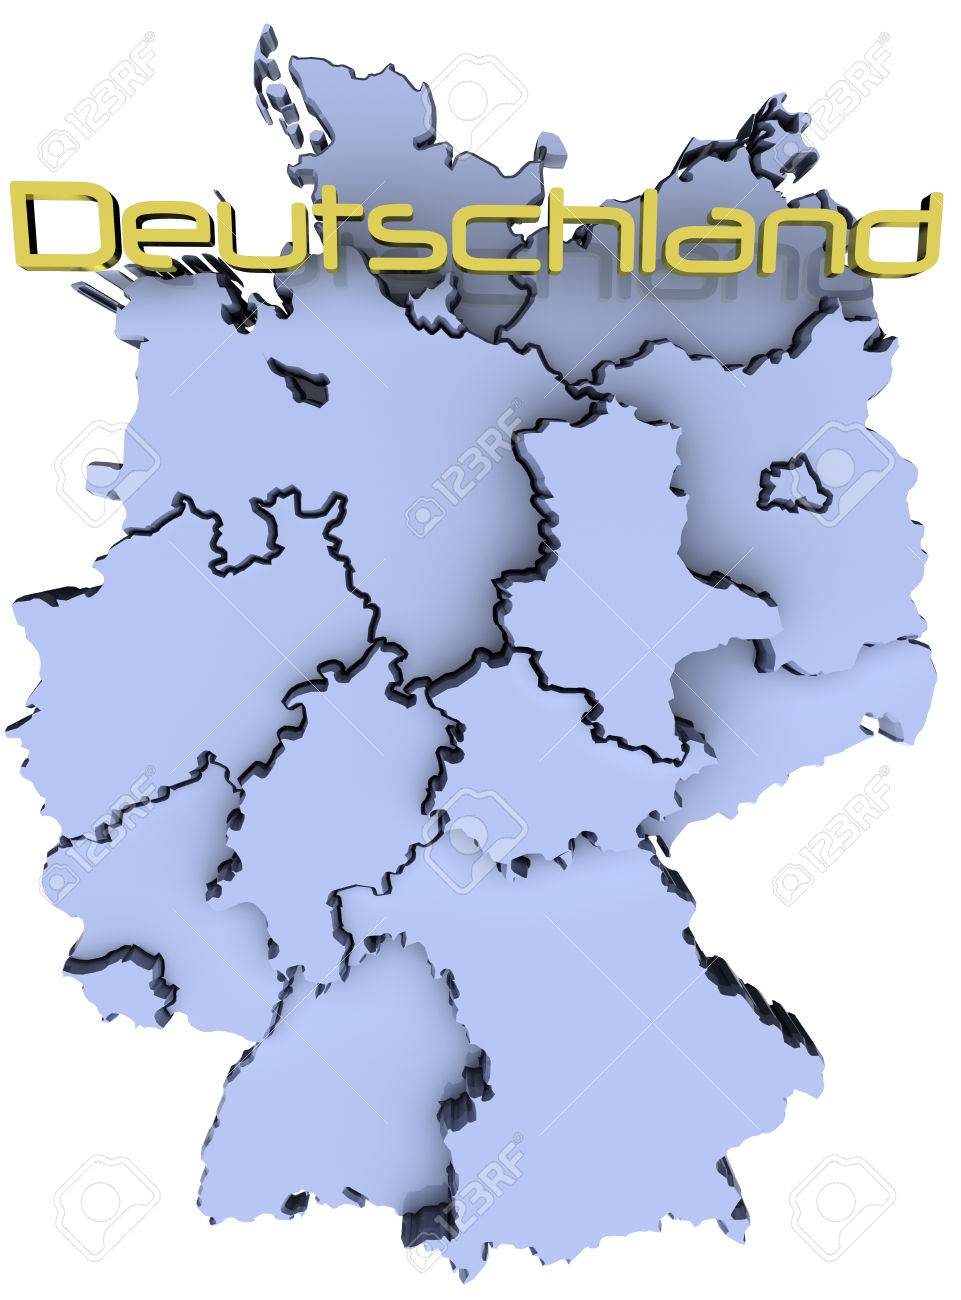 Map Of Germany With States.Map Of Germany States German Republic Deutschland Name